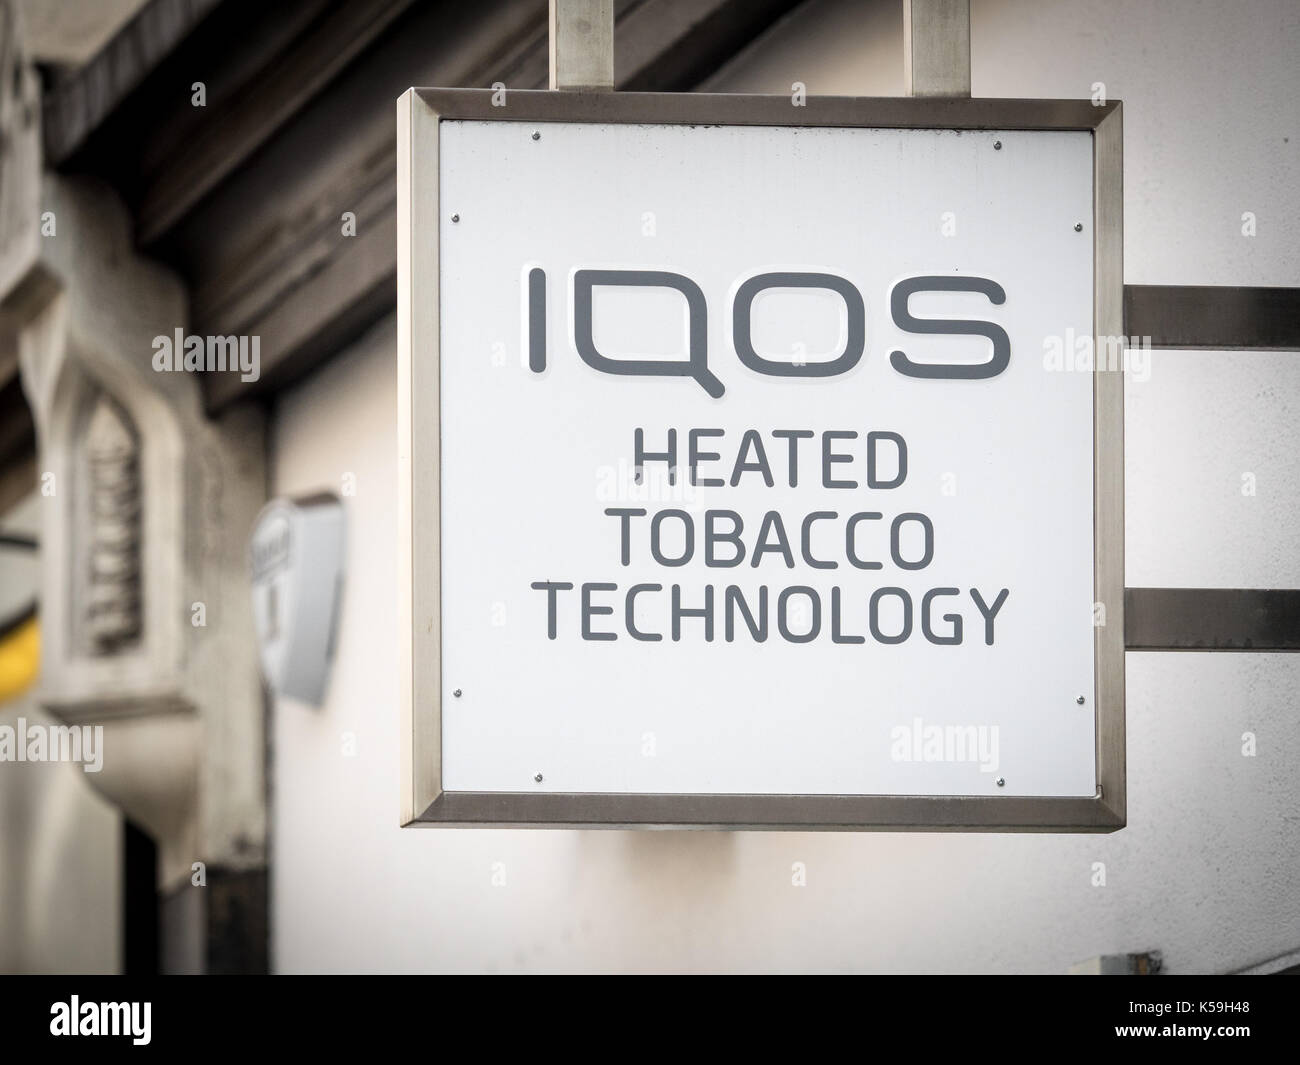 iqos technology